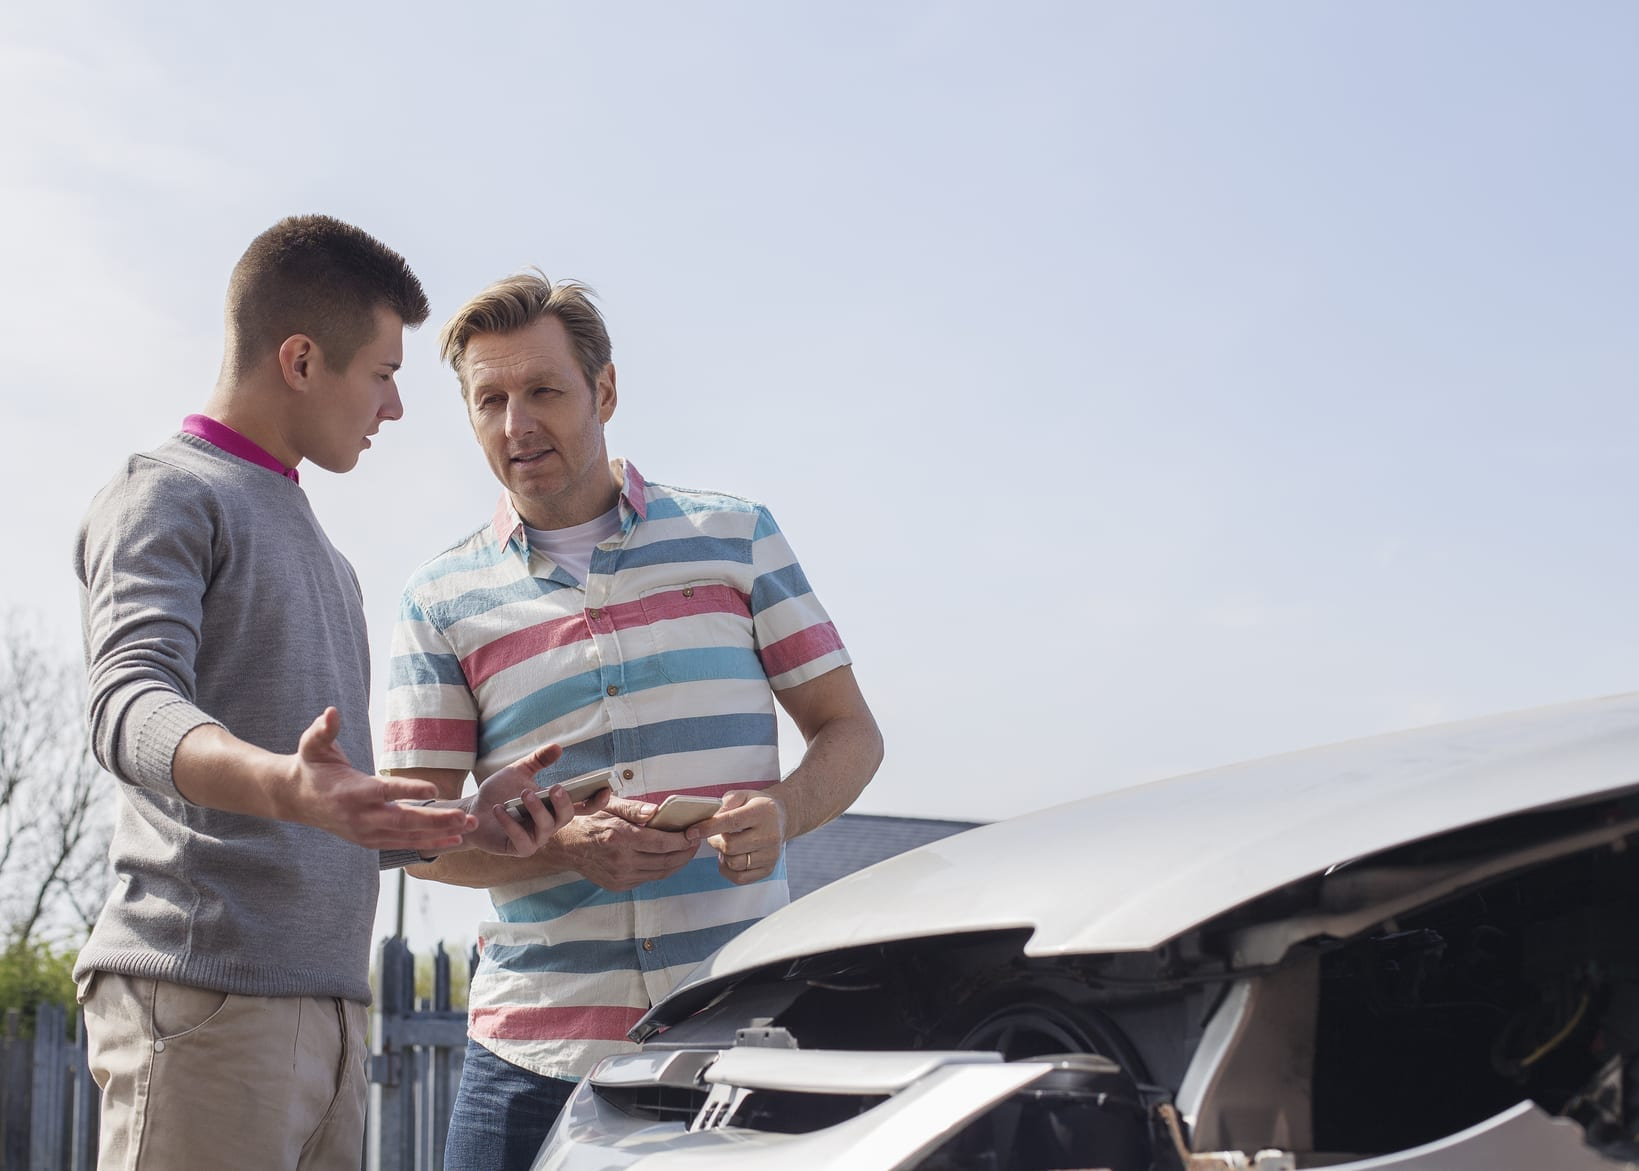 Two Men After A Car Accident Stock Photo